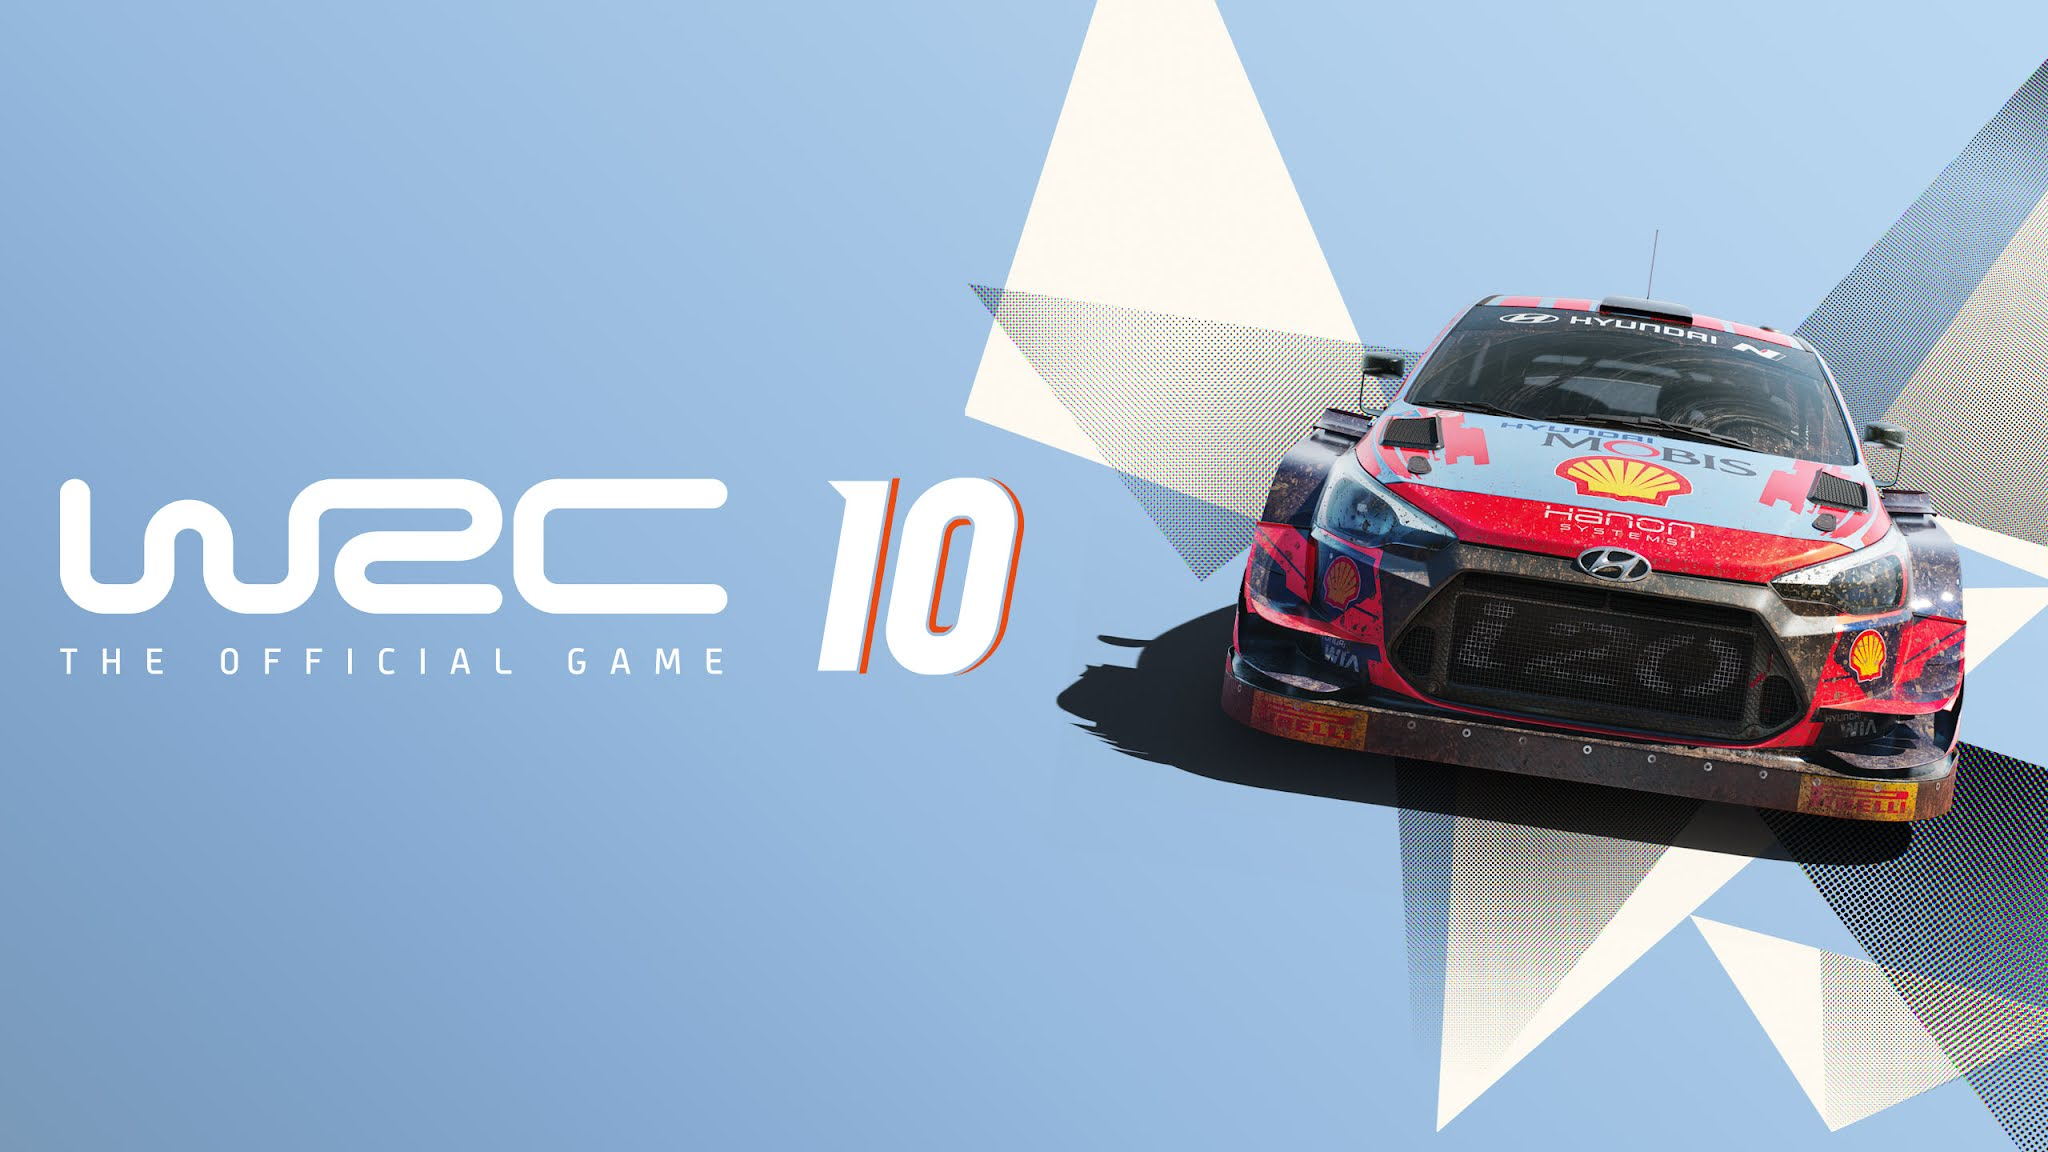 WRC 10 is available now!